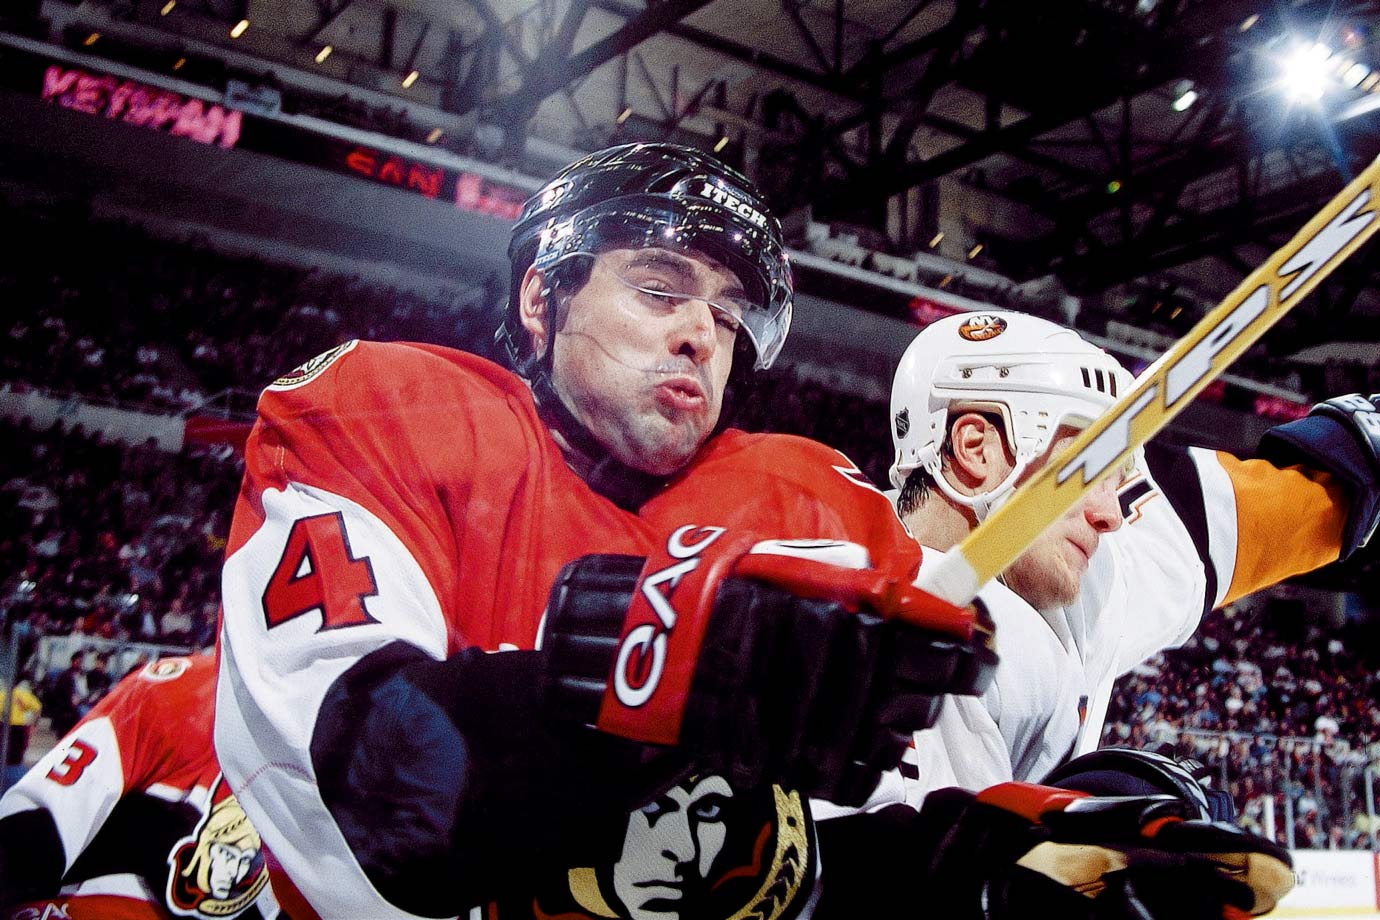 Phillips has been a reliable if unspectacular defensive blueliner for 17 seasons in Ottawa. — Notable picks: No. 2: Andrei Zyuzin, D, San Jose Sharks | No. 24: Danny Briere, C, Arizona Coyotes | No. 56: Zdeno Chara, D, New York Islanders | No. 179: Pavel Kubina, D, Tampa Bay Lightning | No. 204: Tomas Kaberle, D, Toronto Maple Leafs